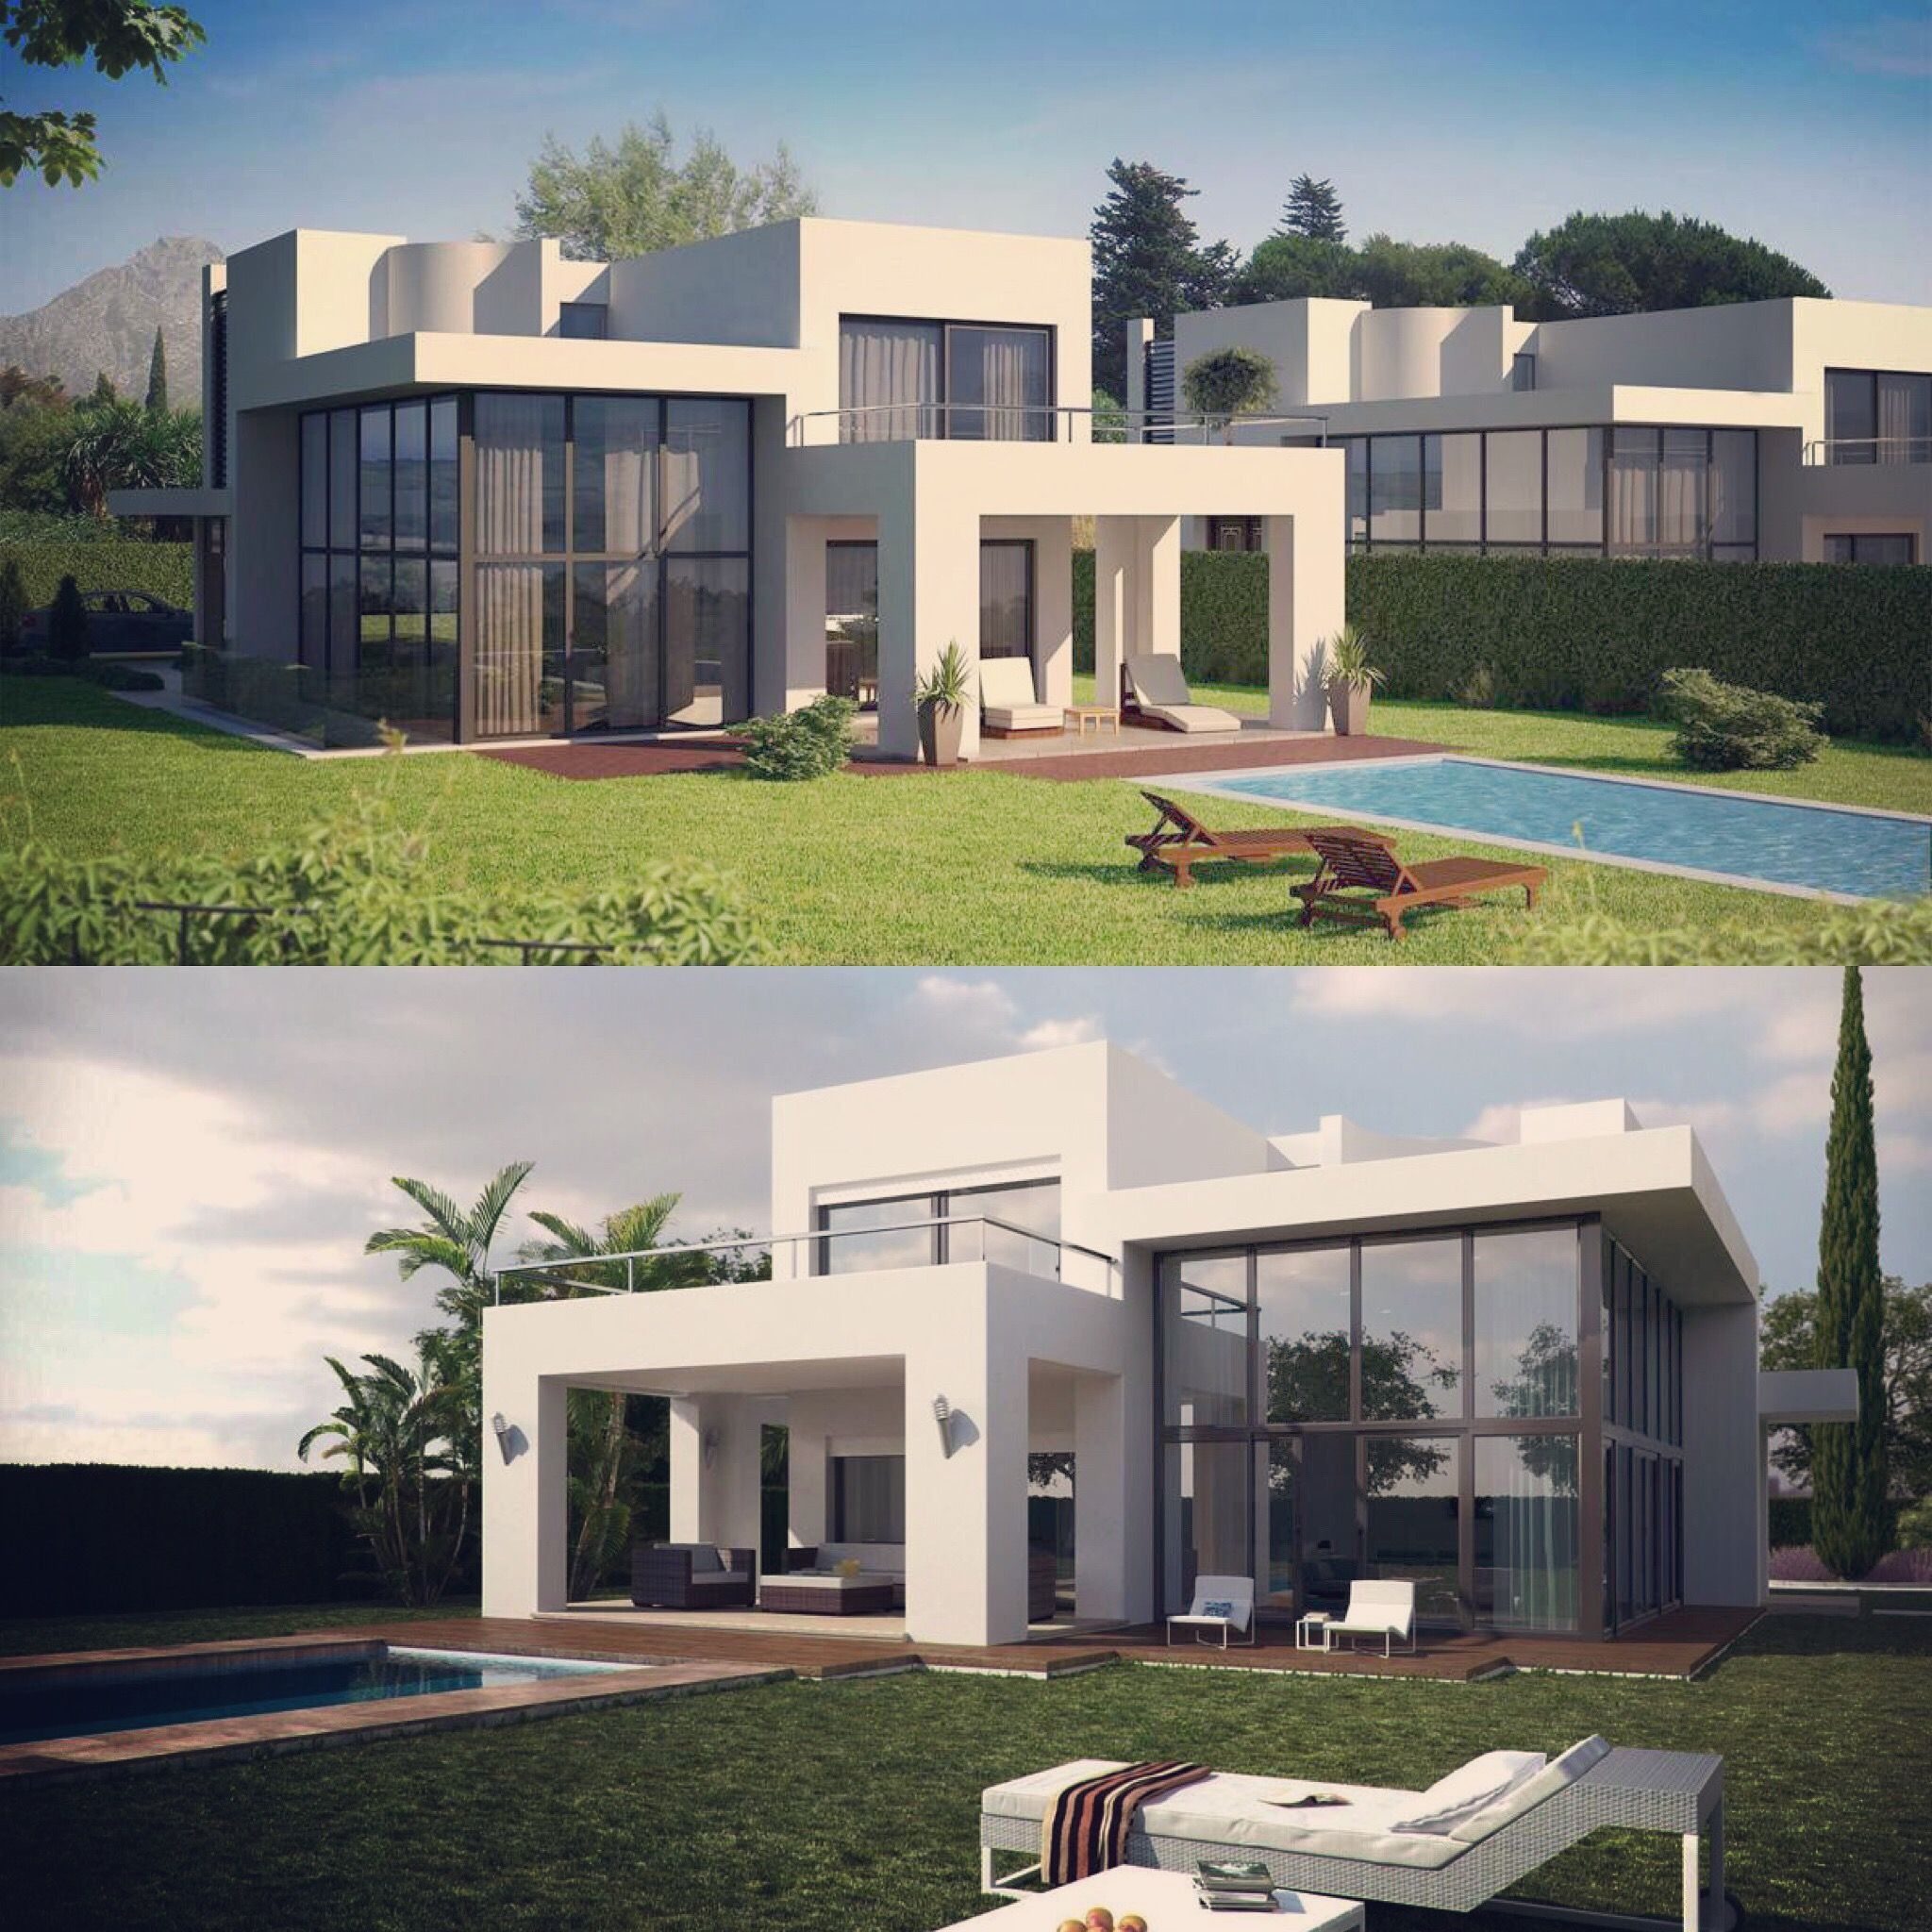 Architecture, Residential Compound, Render, Environmental, Sustainable,  Design, Green, Leed